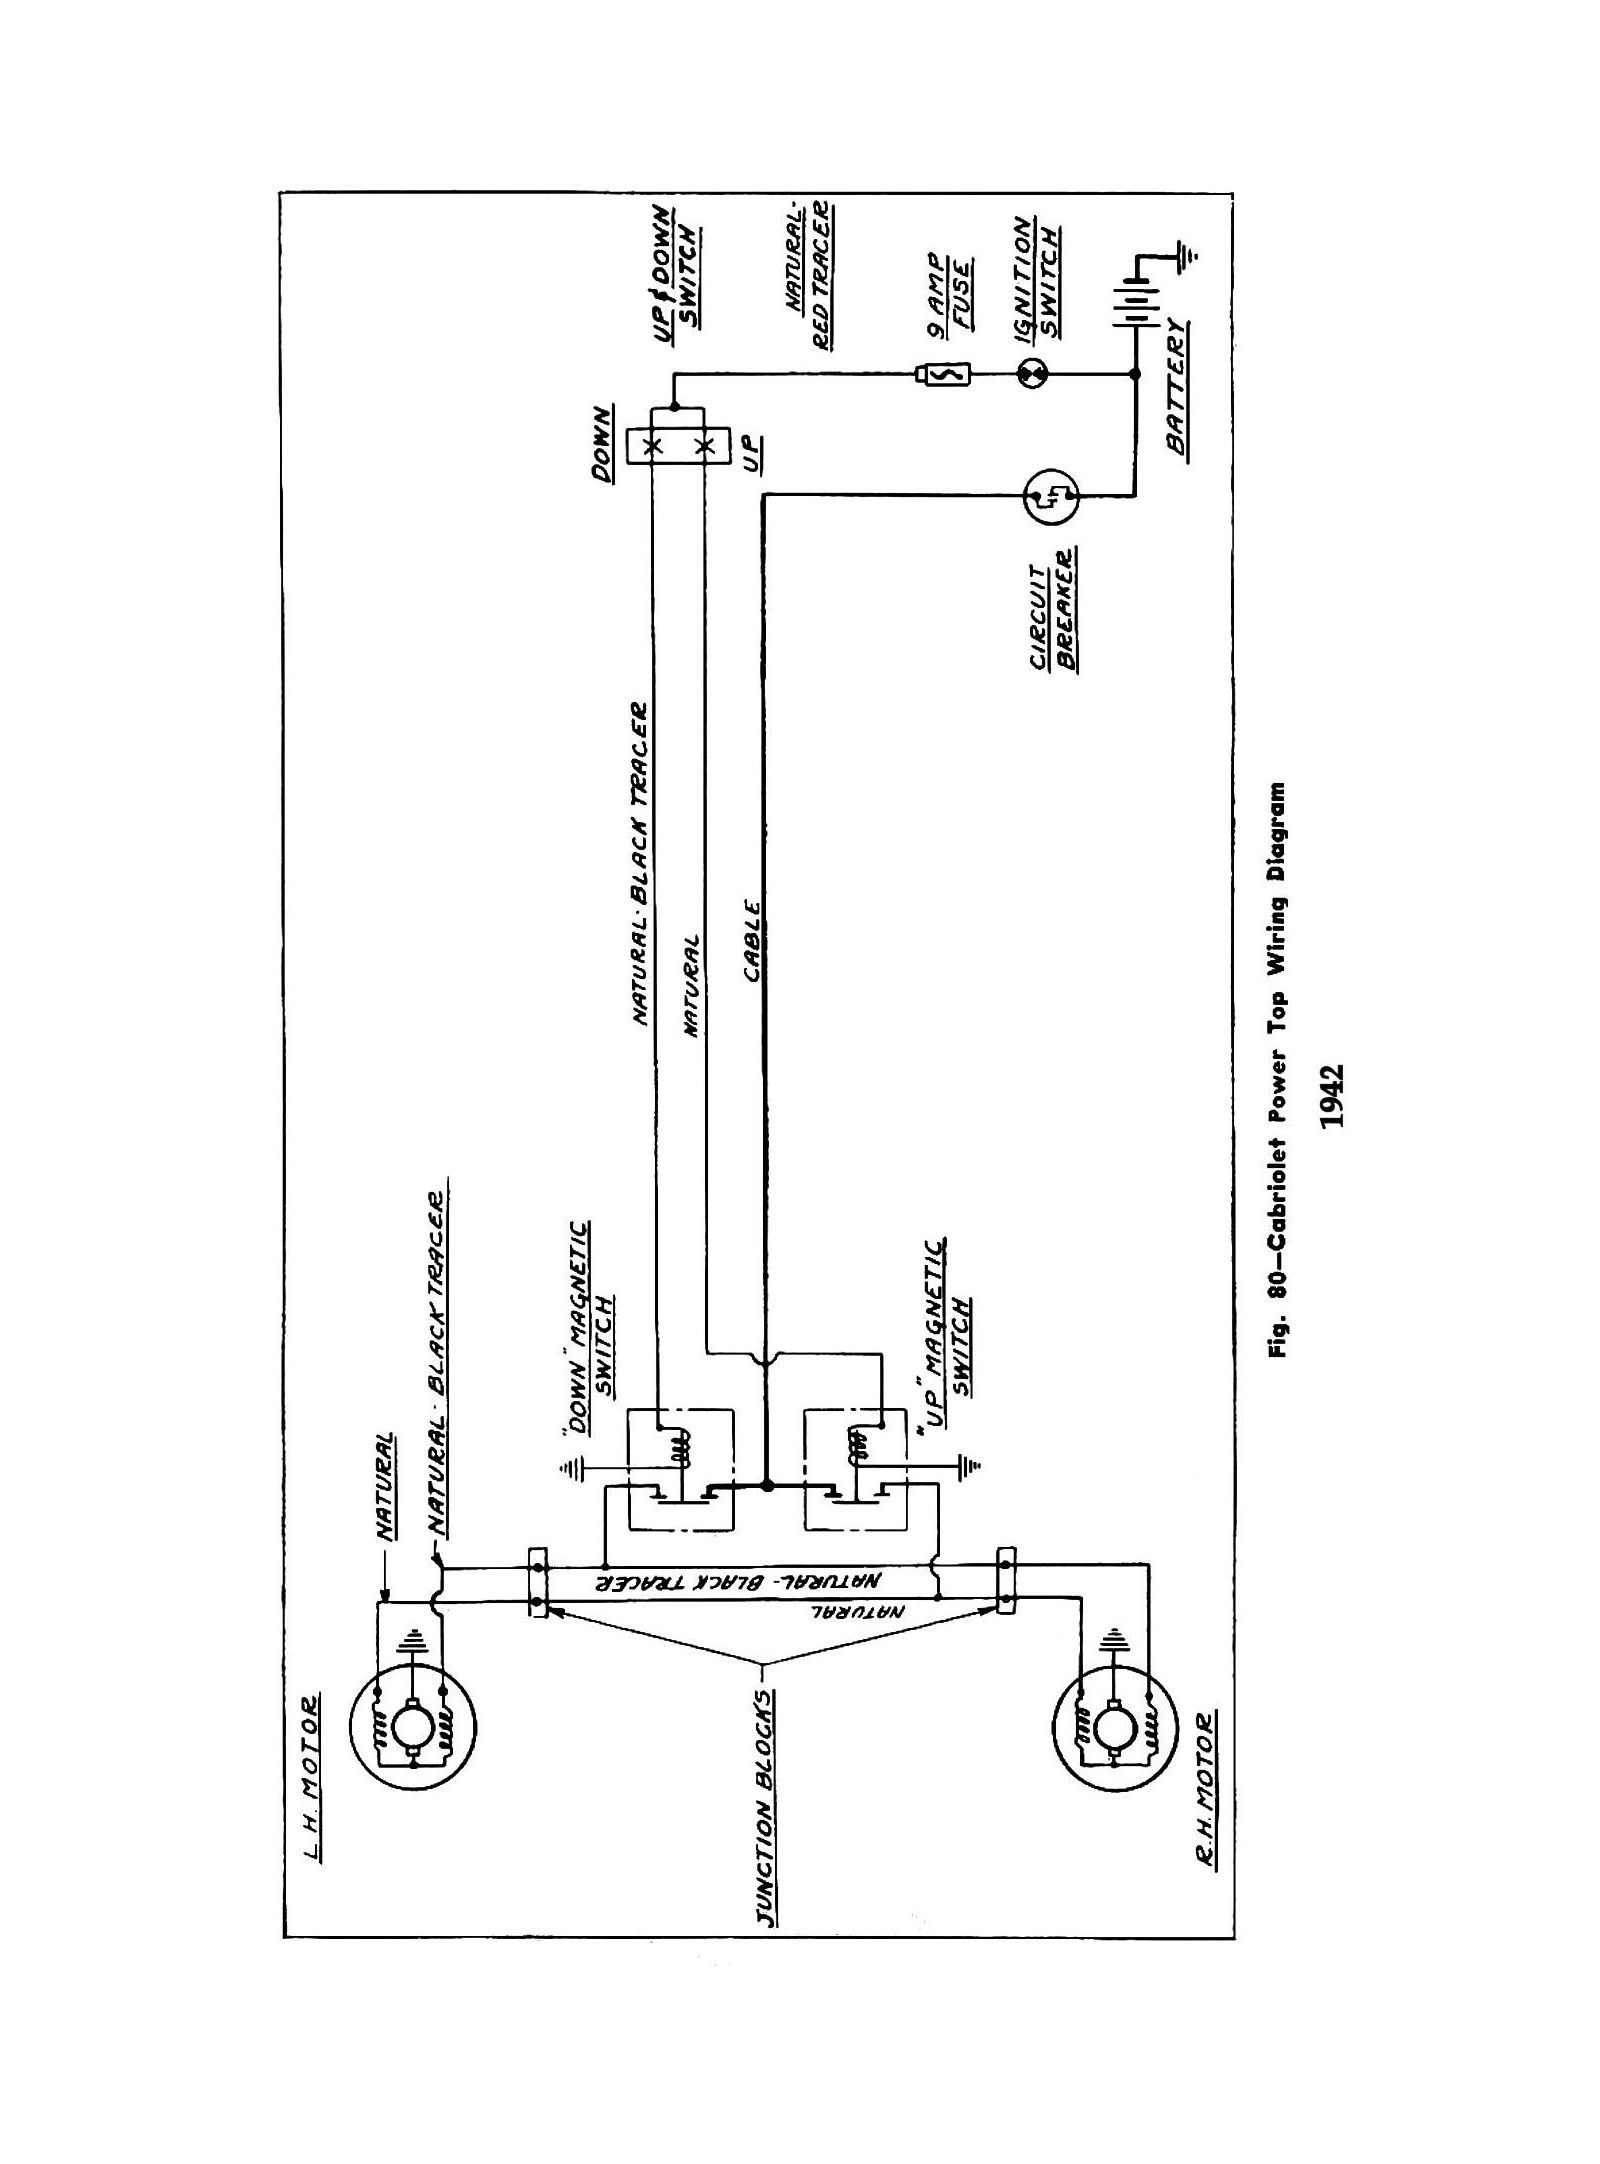 1951 chevy truck wiring harness